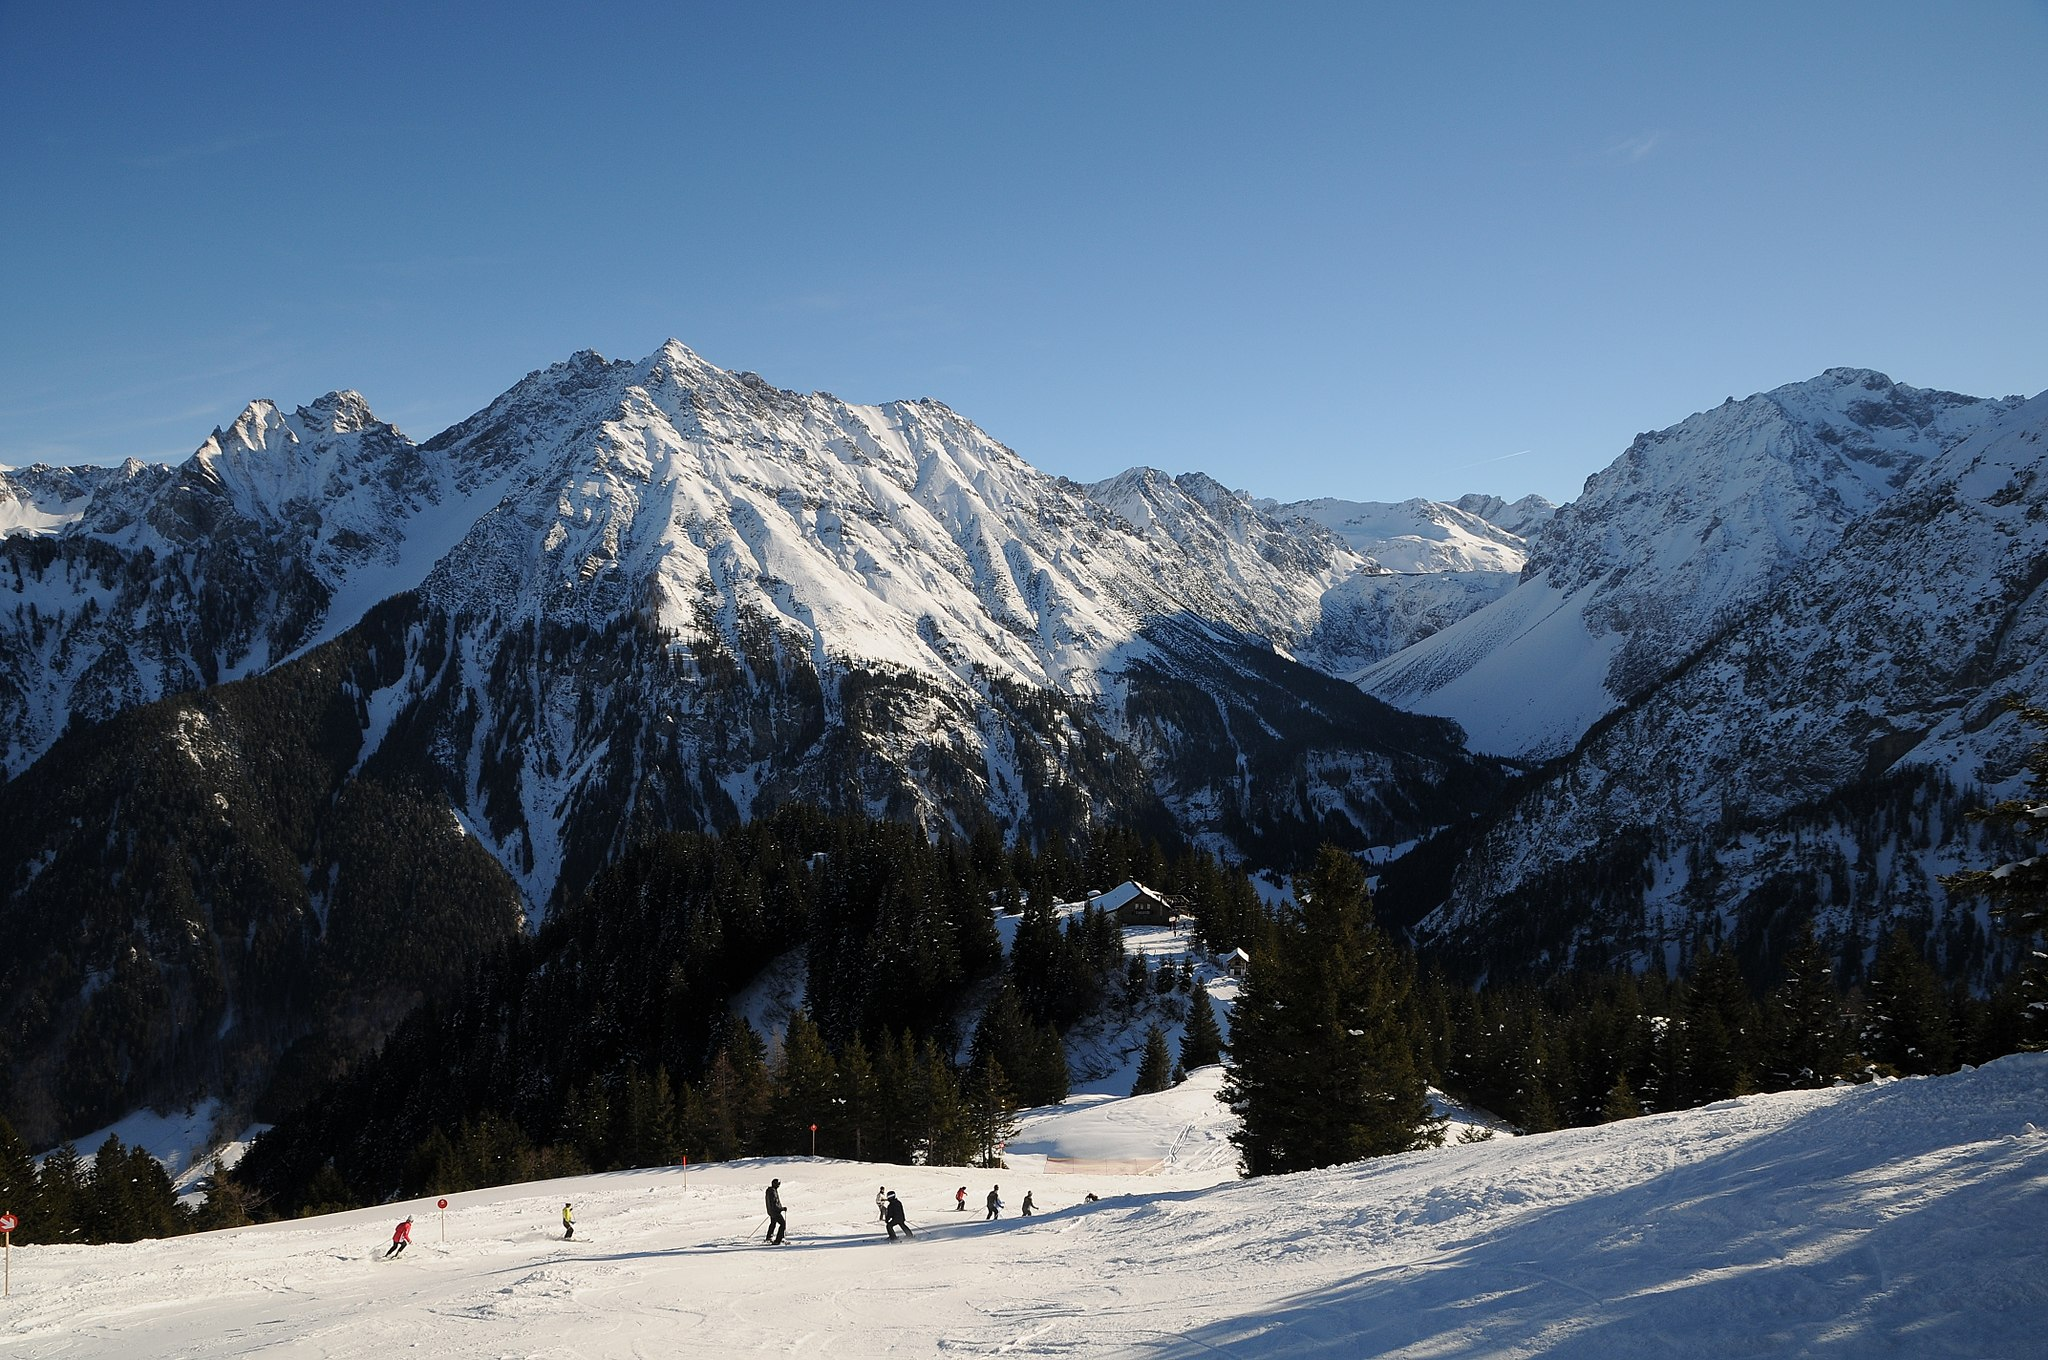 Brandnertal Ski Slopes